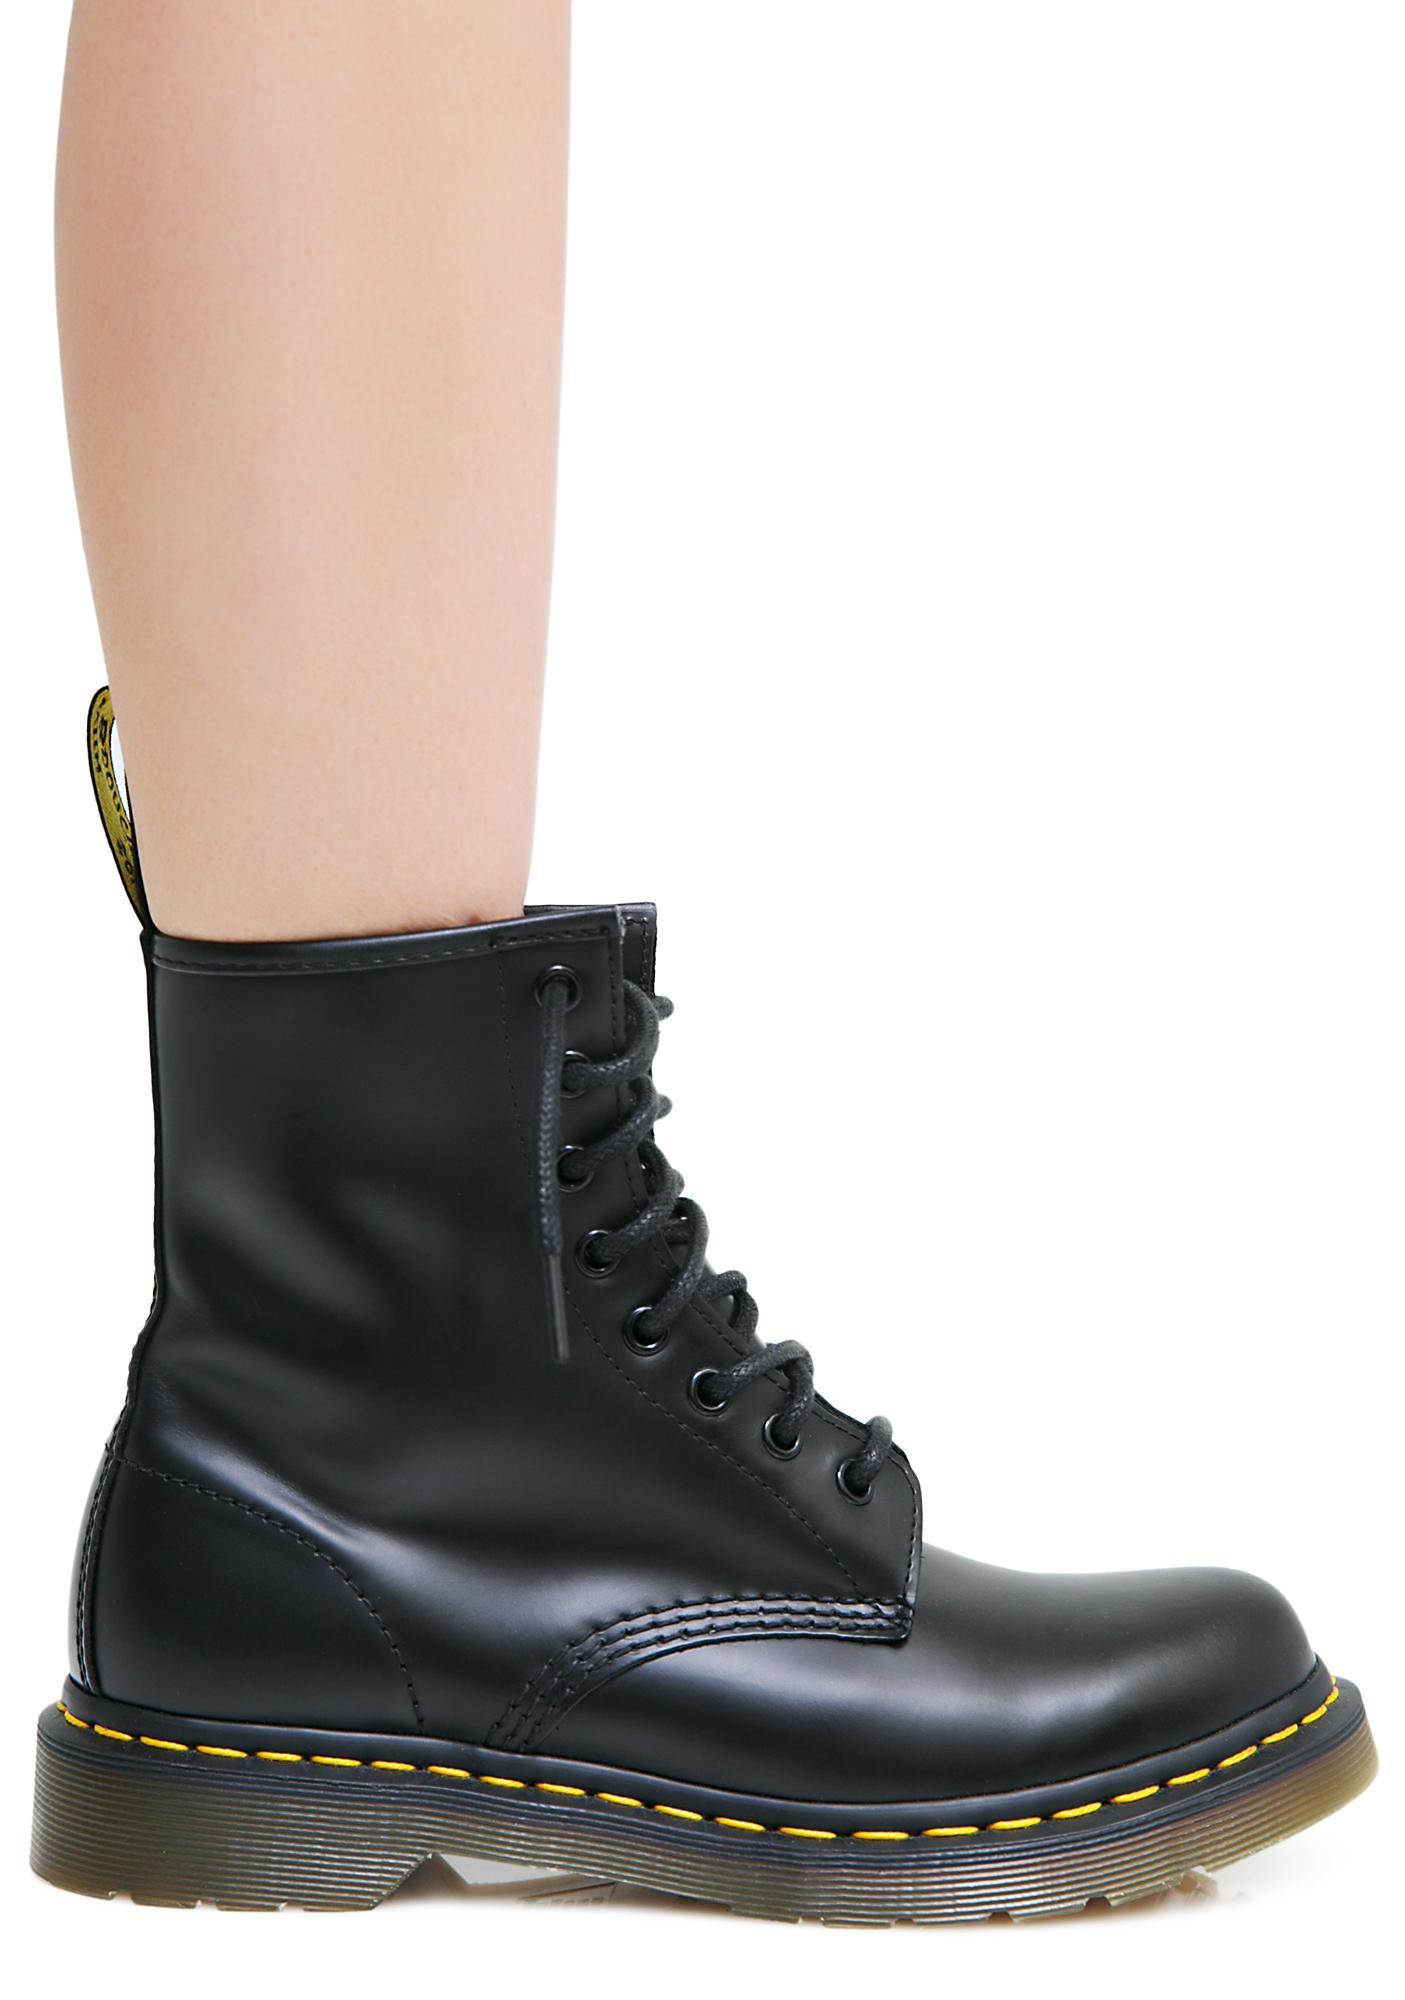 79 1460 smooth boot 1460 8 eye boots official dr martens store uk image 1 of dr martens